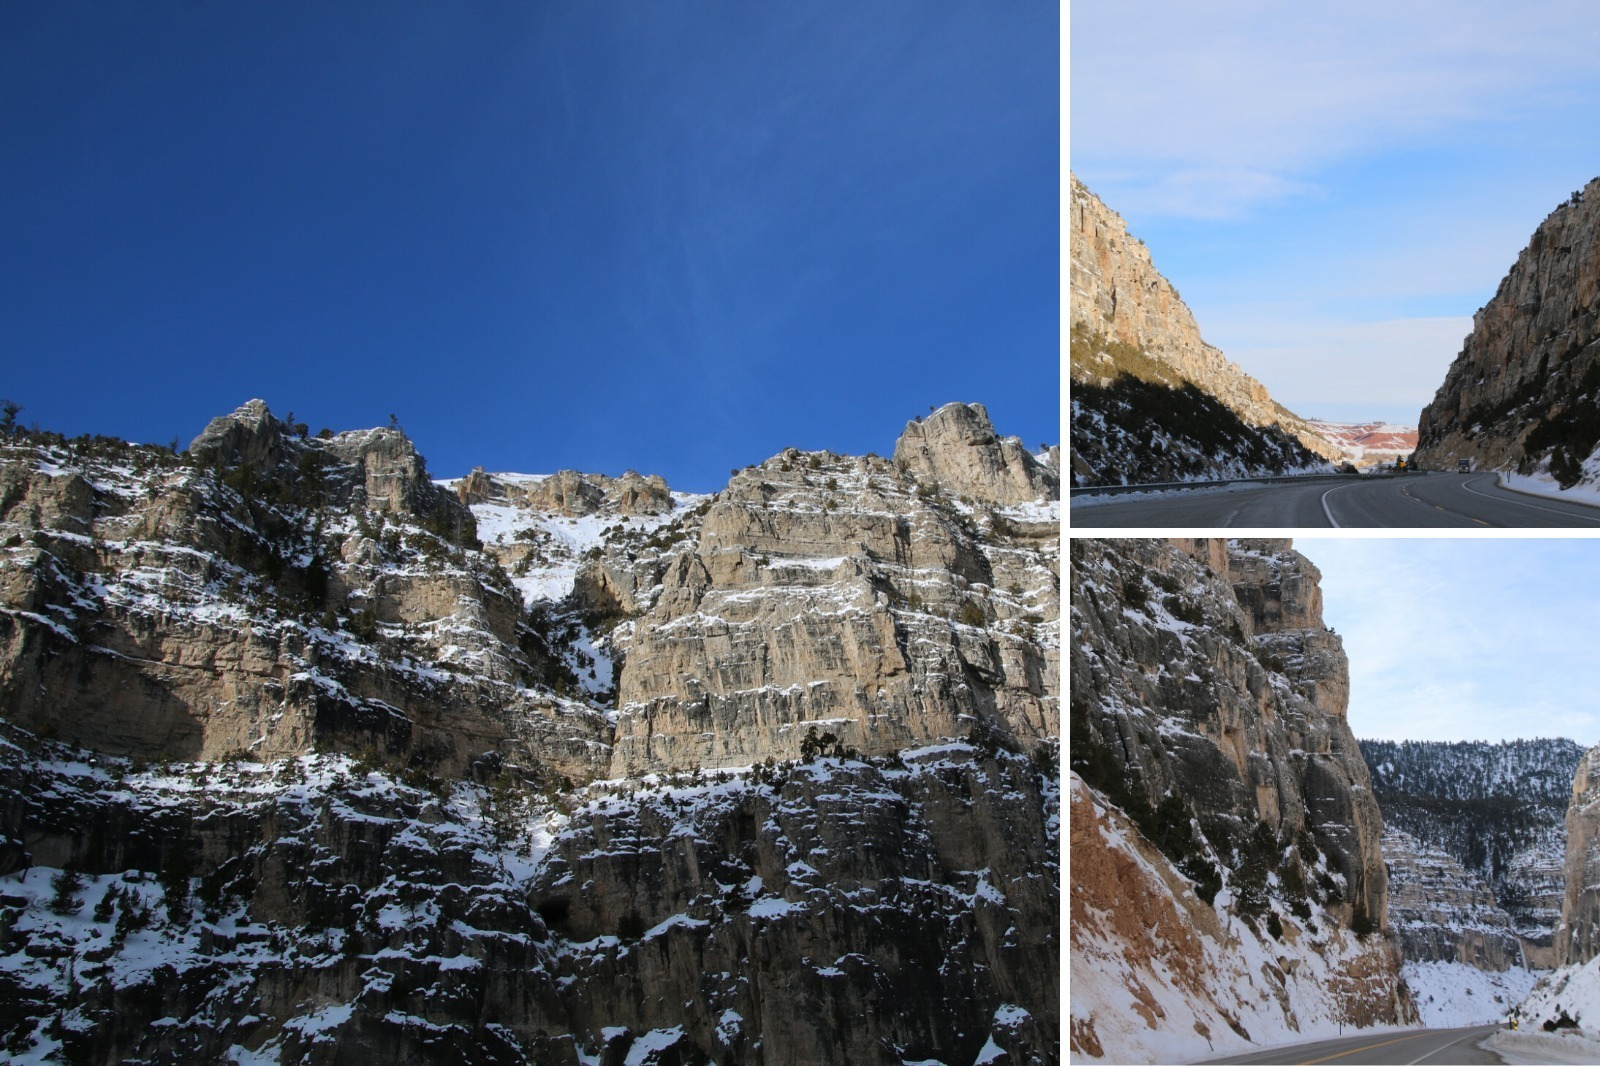 Wind River Canyon Scenic byway images in winter